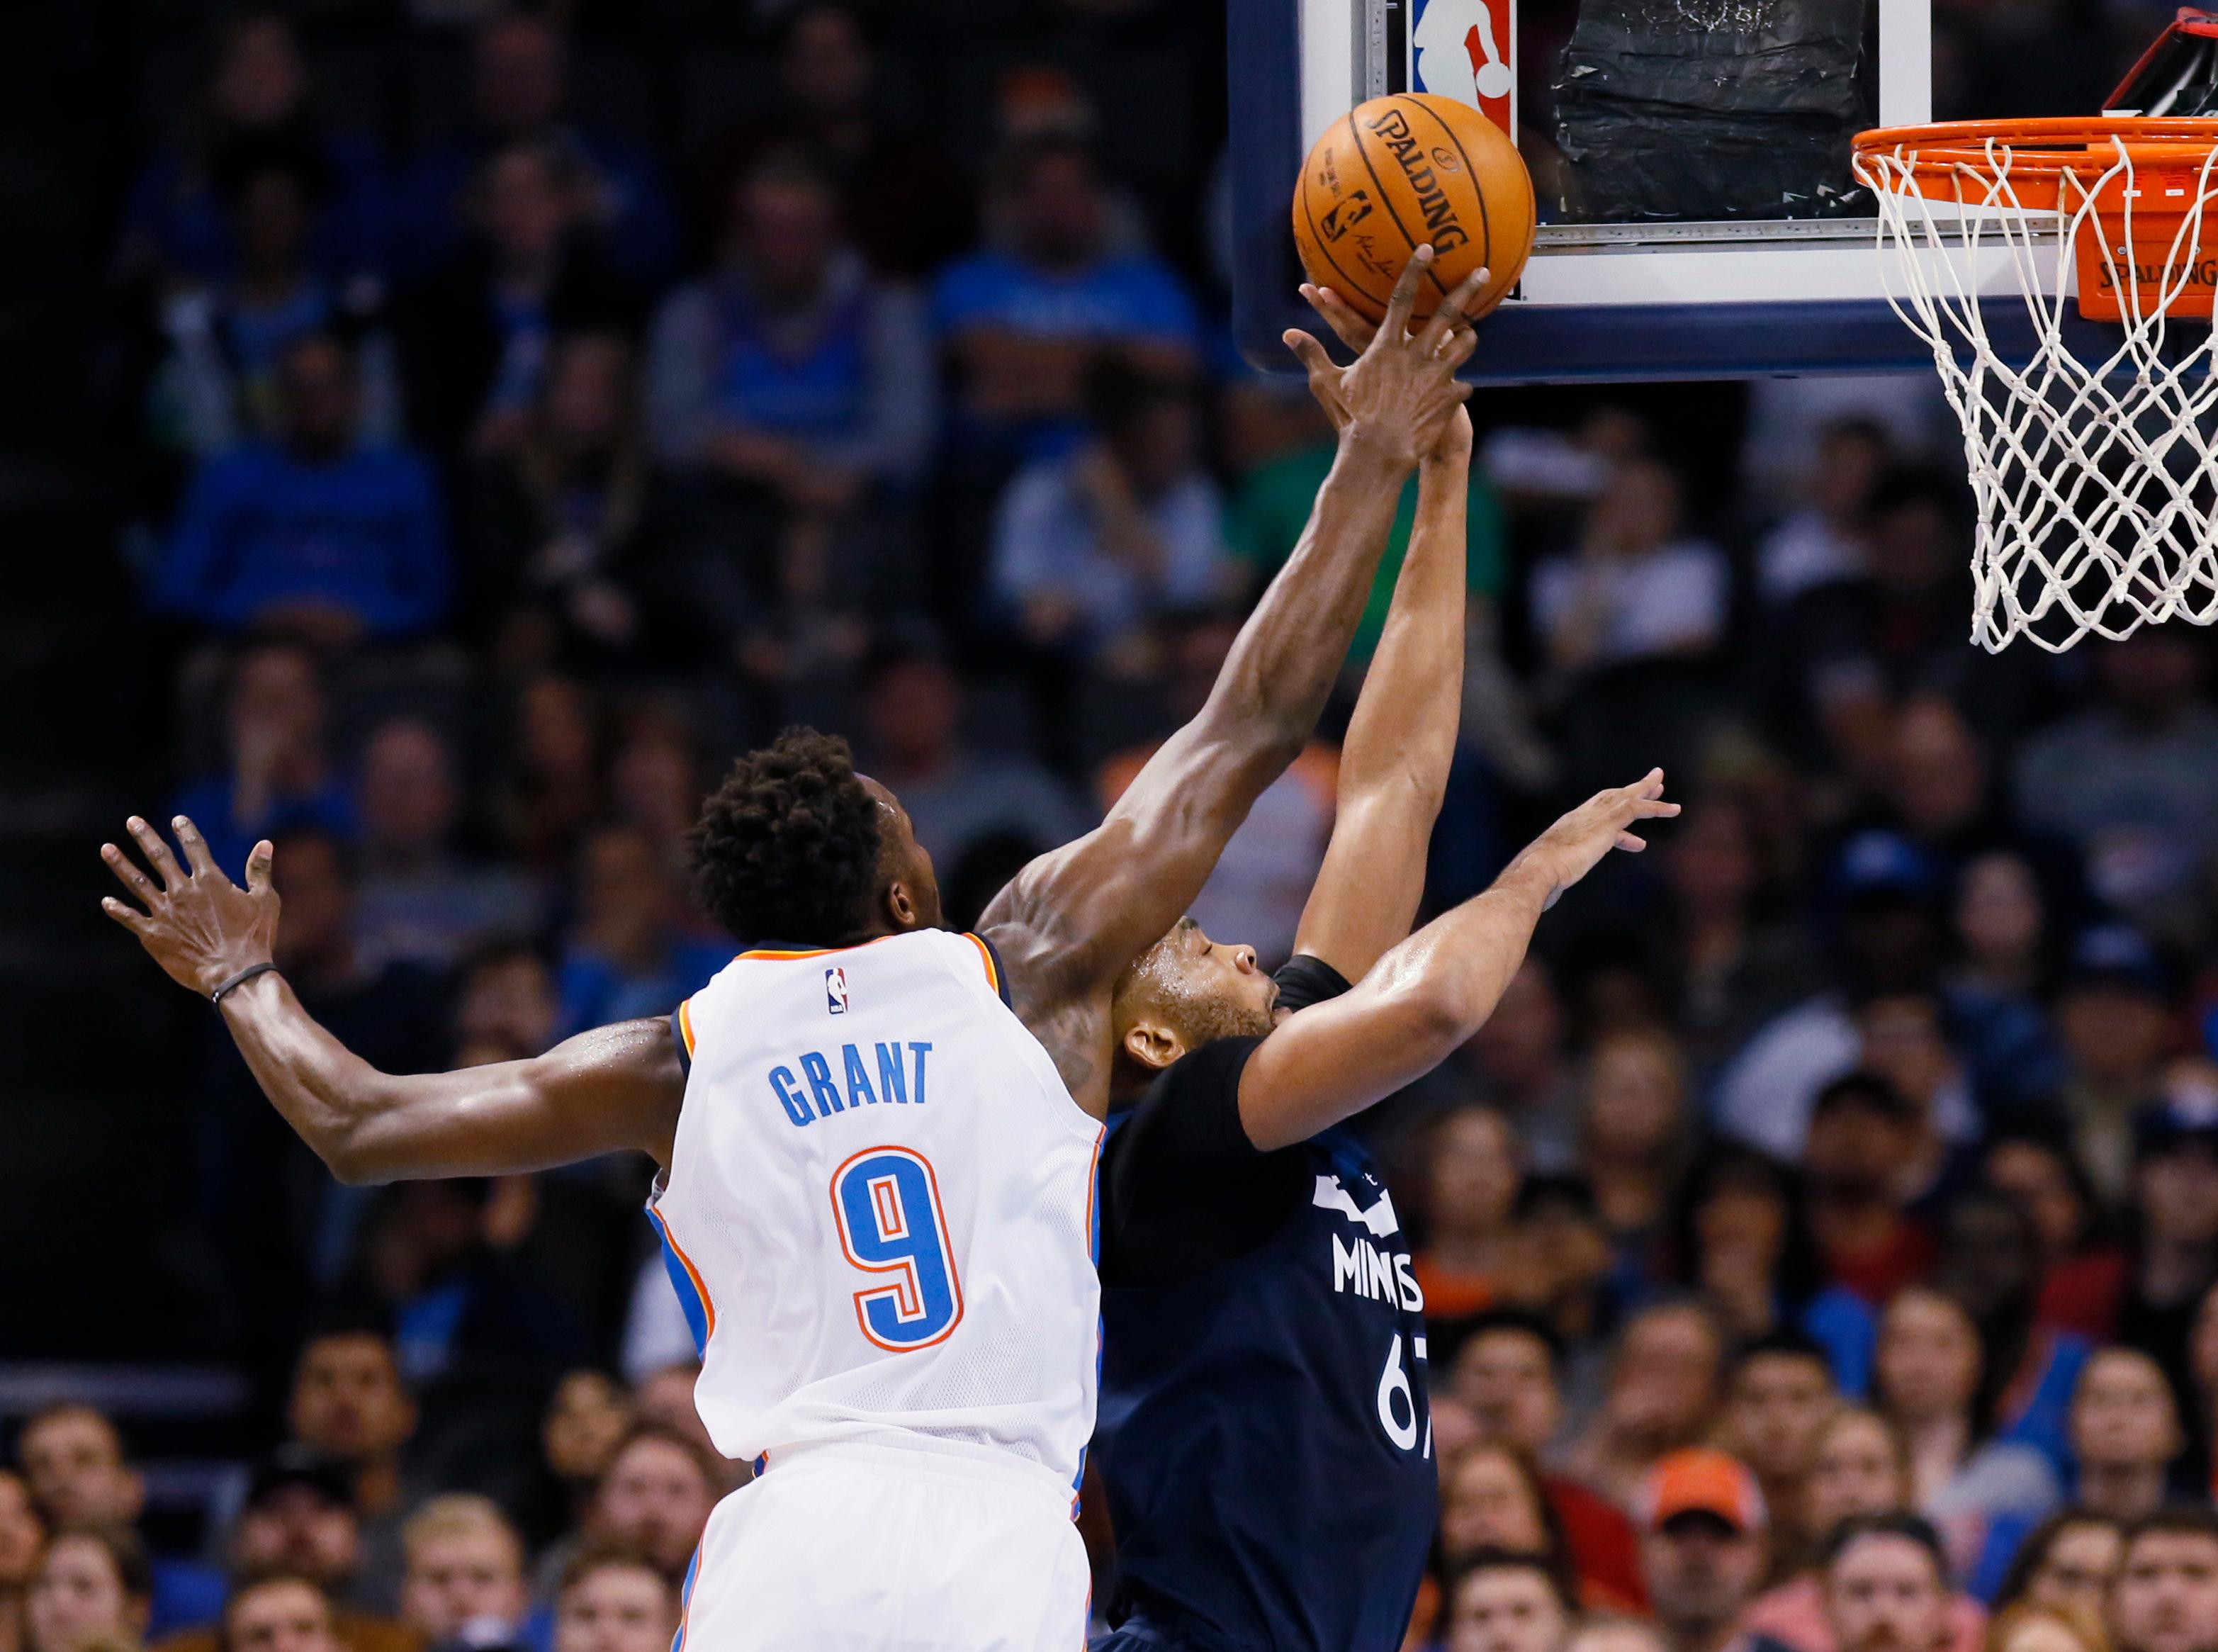 Oklahoma City Thunder forward Jerami Grant (9) gets his hand on the ball as Minnesota Timberwolves forward Taj Gibson (67) shoots during the first quarter of an NBA basketball game in Oklahoma City, Friday, Dec. 1, 2017. (AP Photo/Sue Ogrocki)